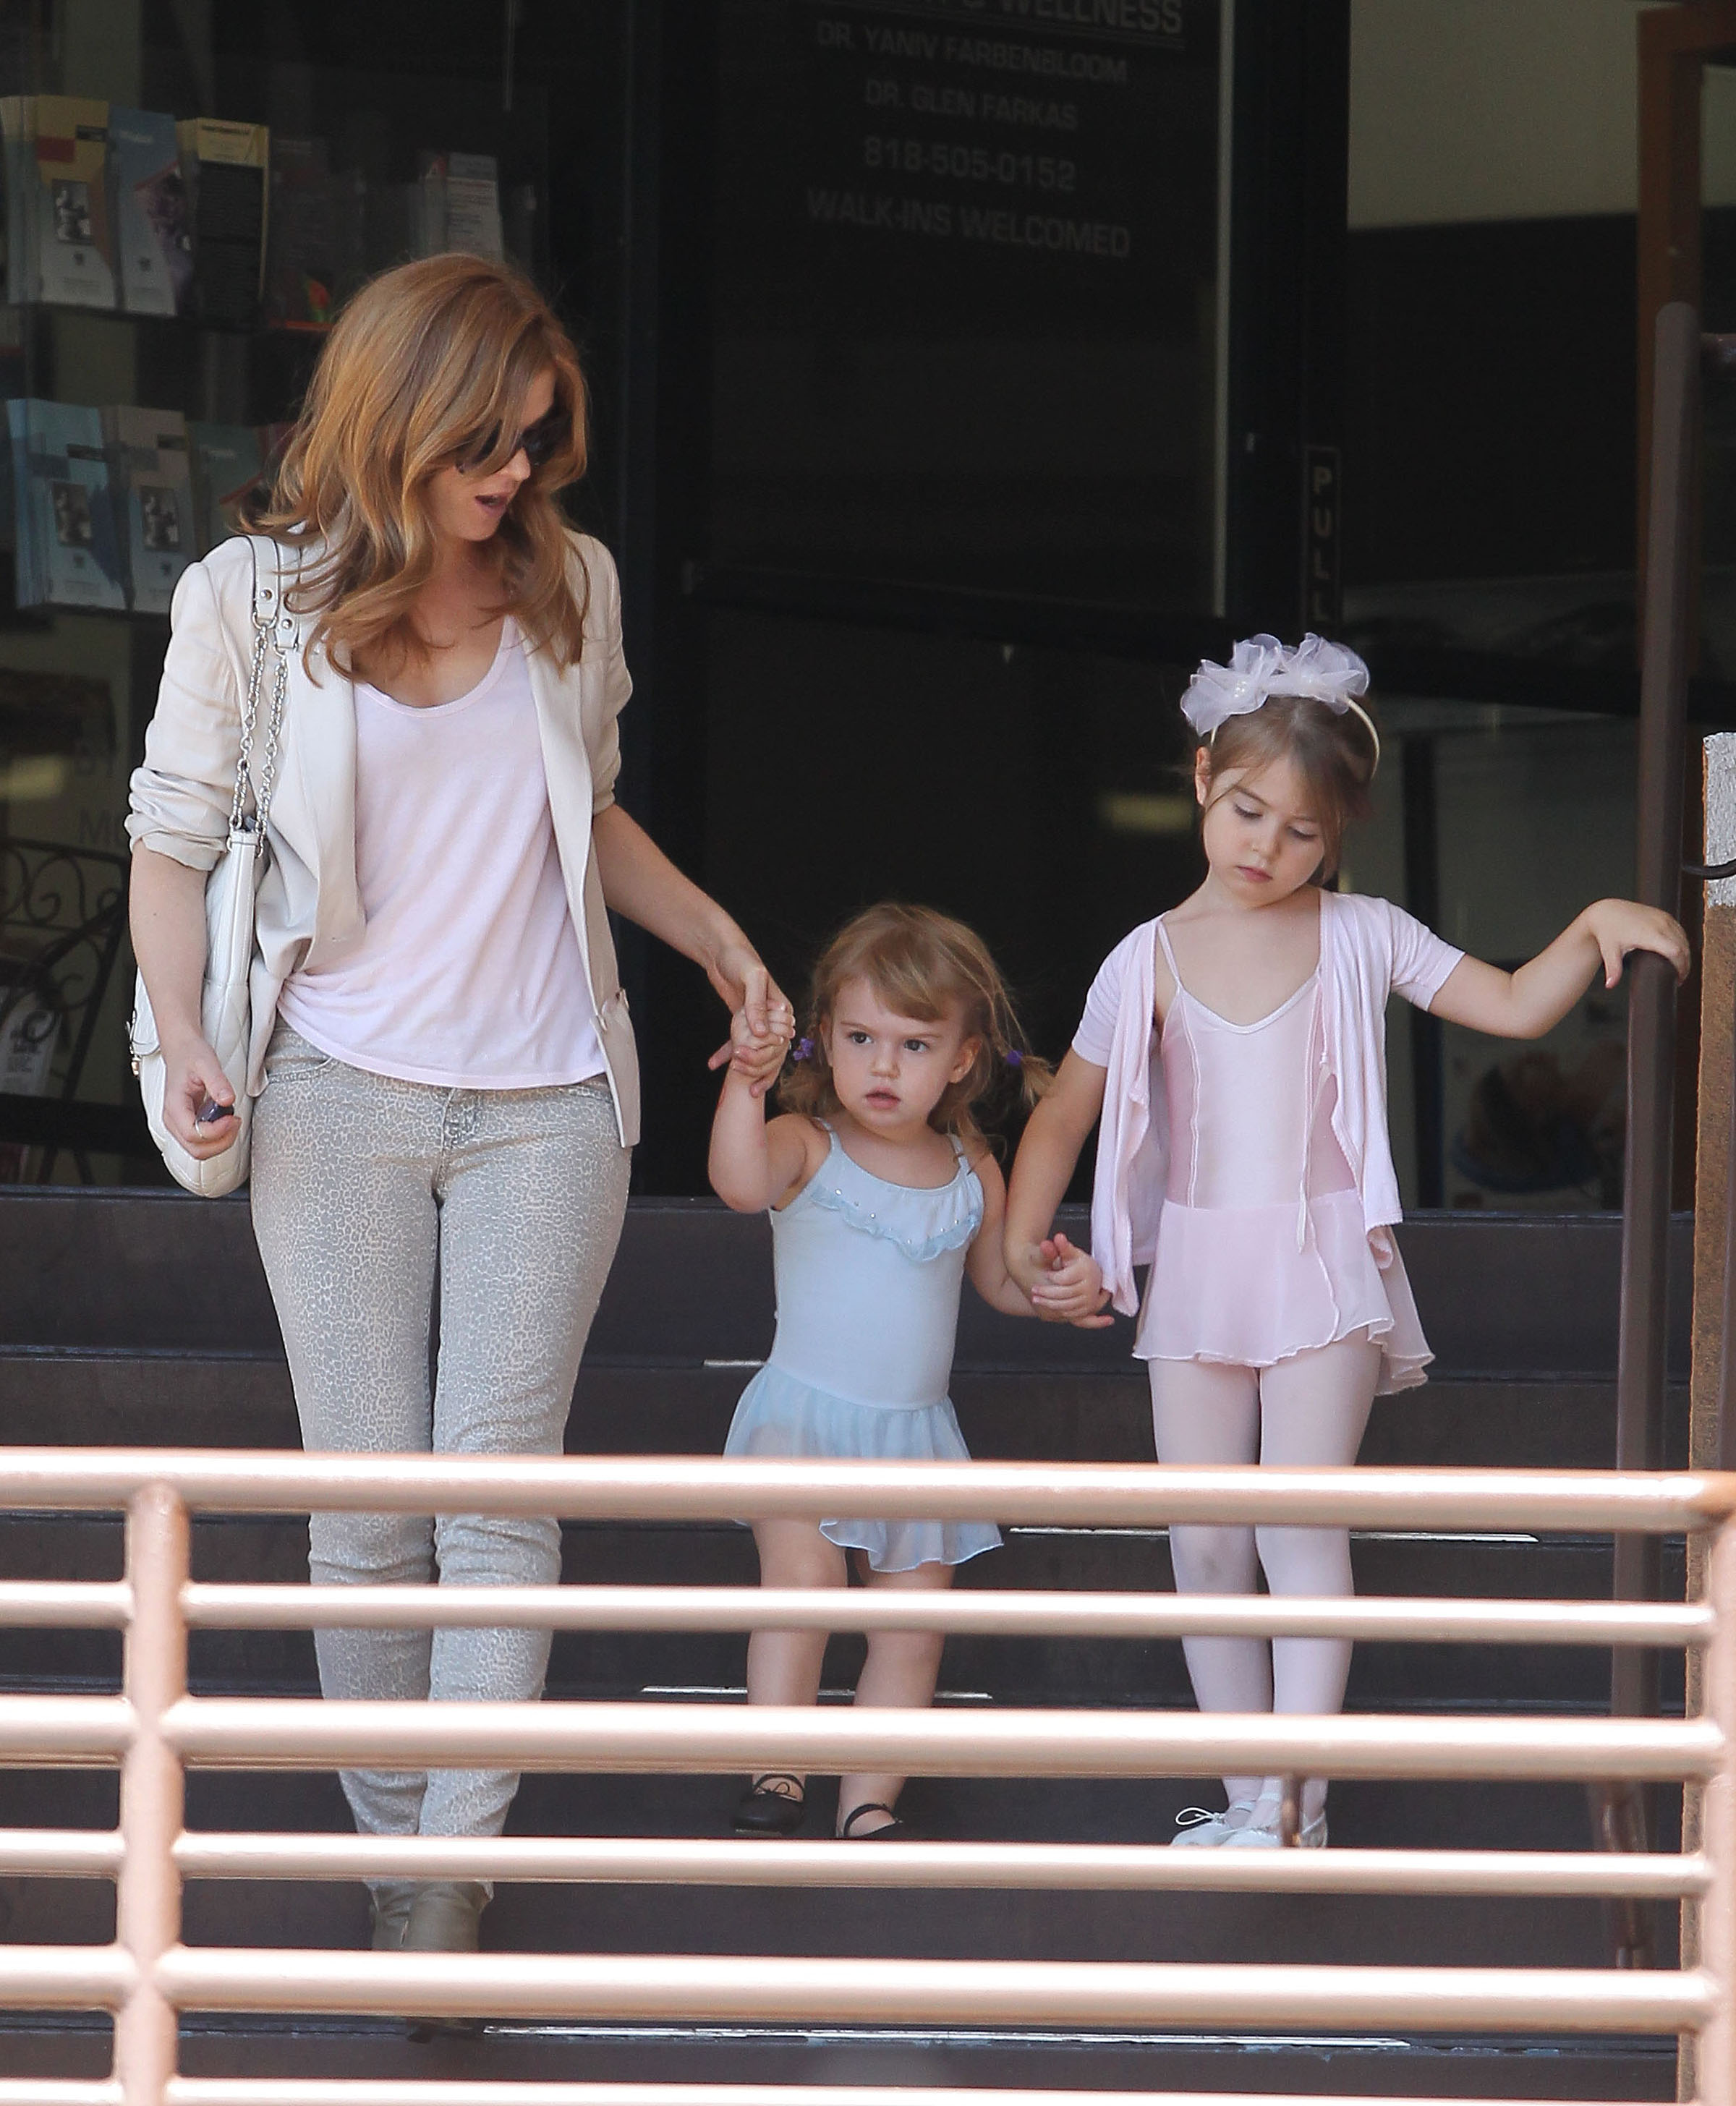 Isla Fisher and daughter Olive Cohen out for a treat (UPDATED) - Today's Parent